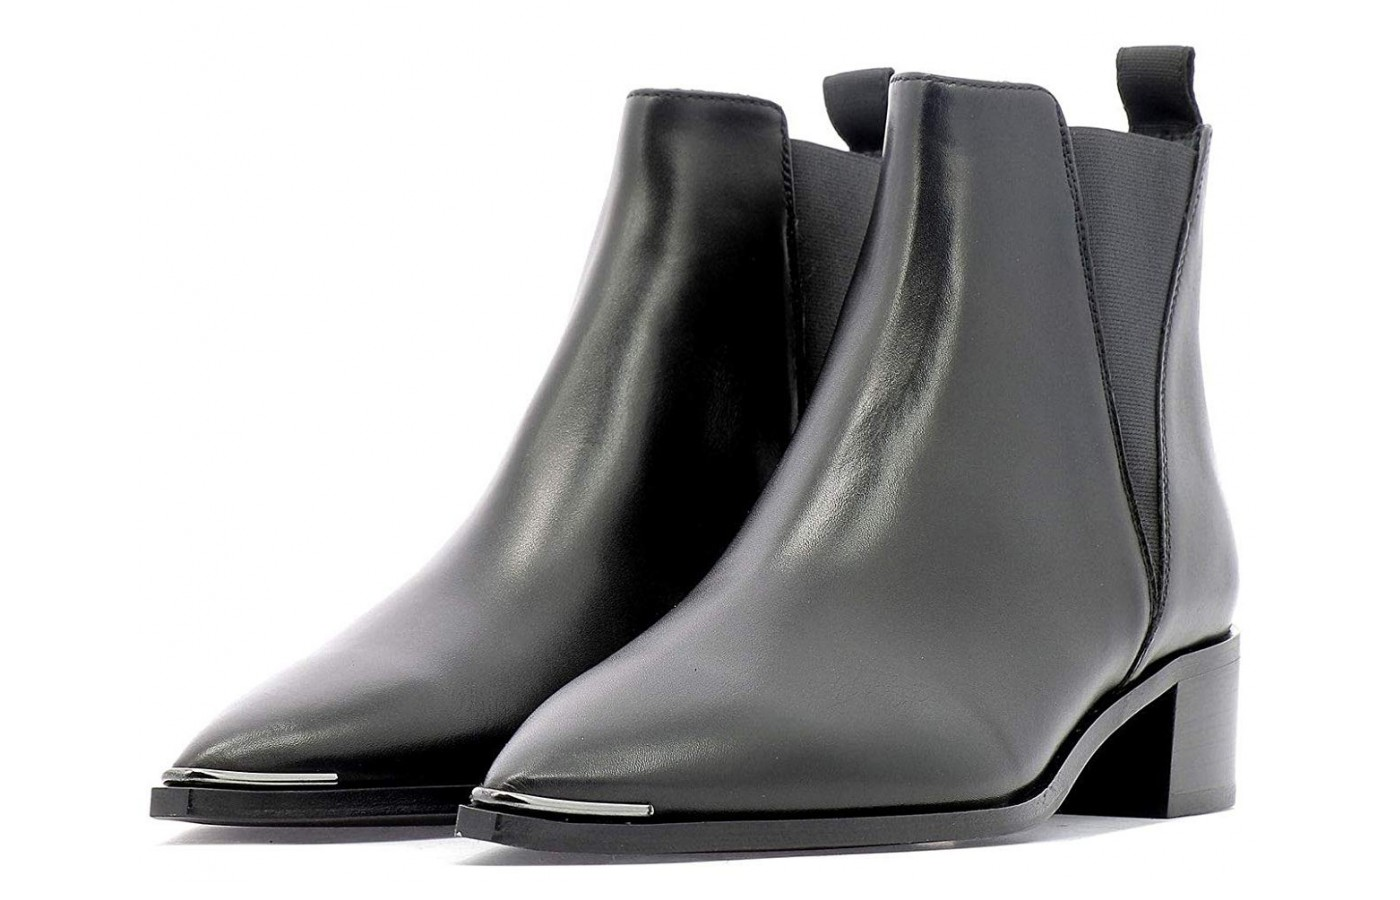 Acne Studios Jensen Italian made ankle boots